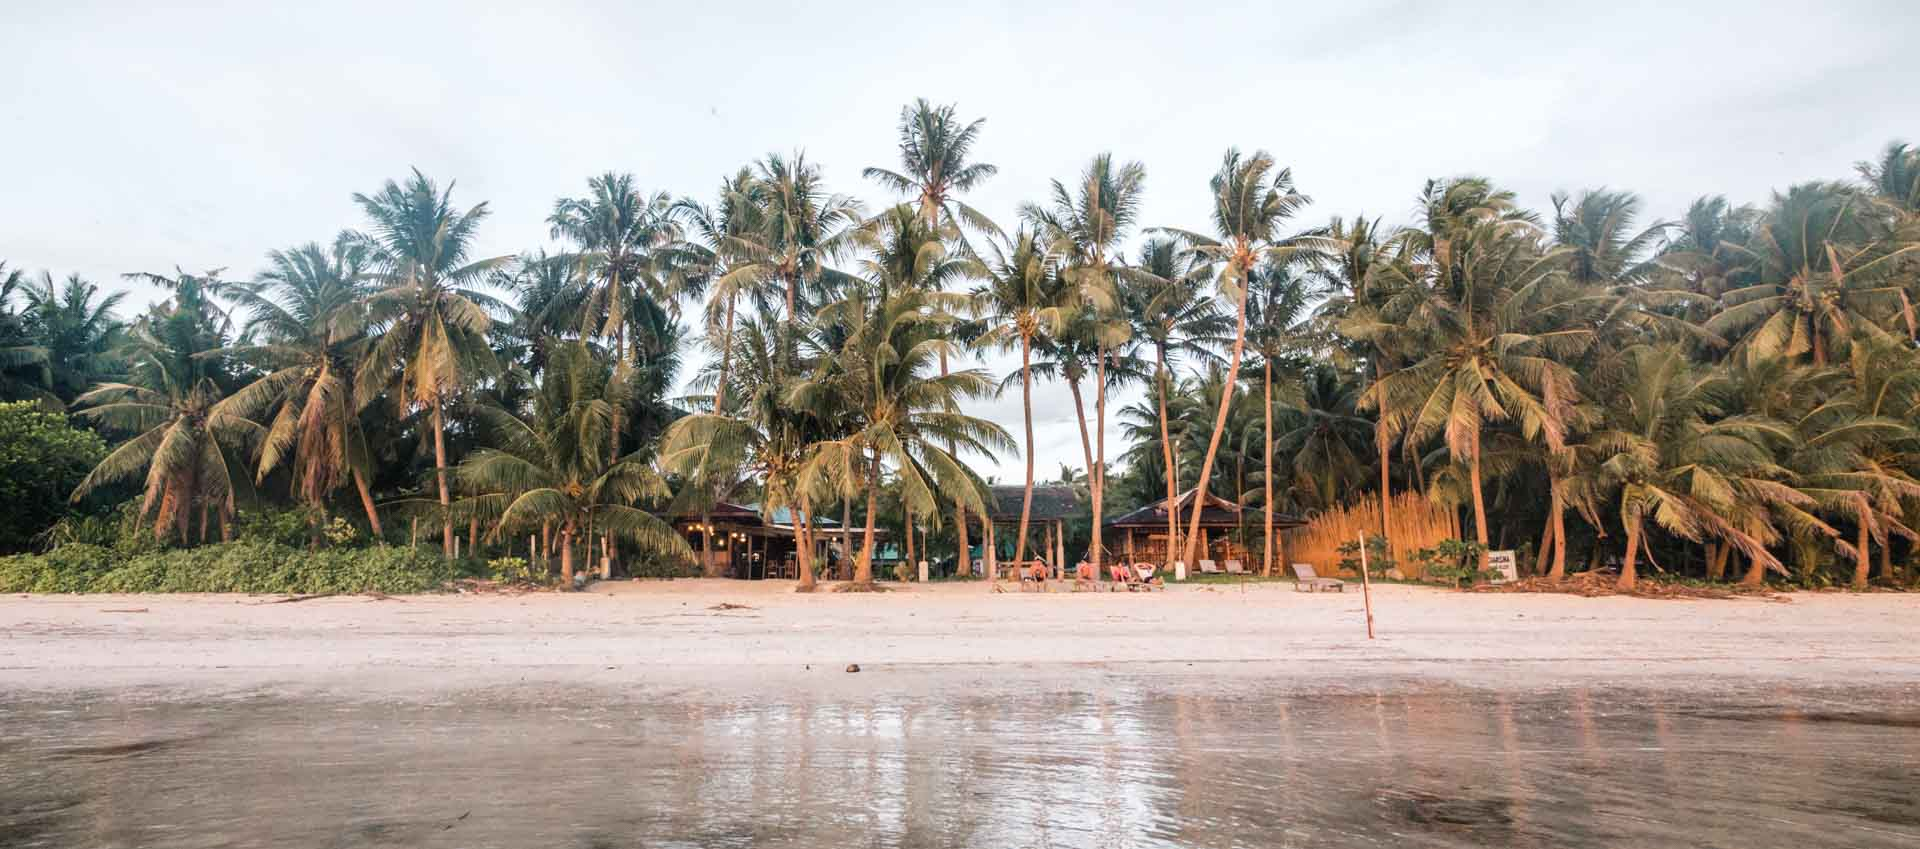 Beach in Siquijor